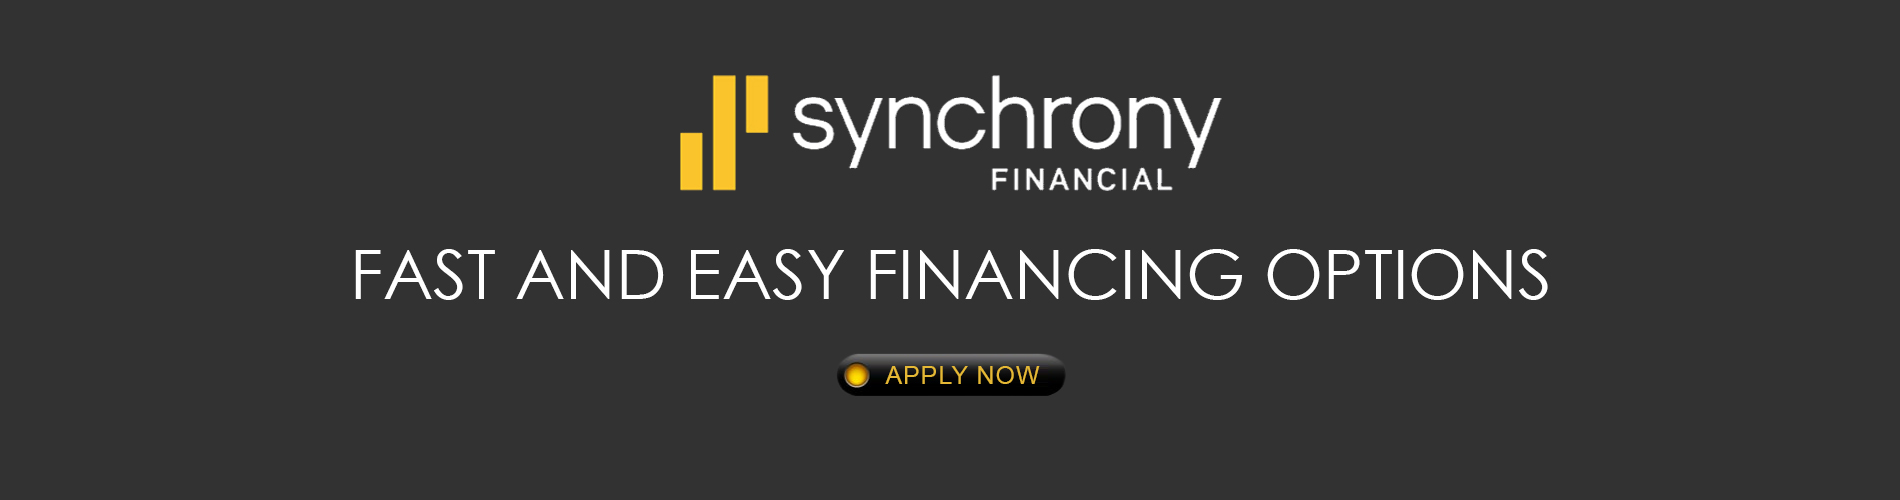 Synchrony Financial - Fast and easy financing options